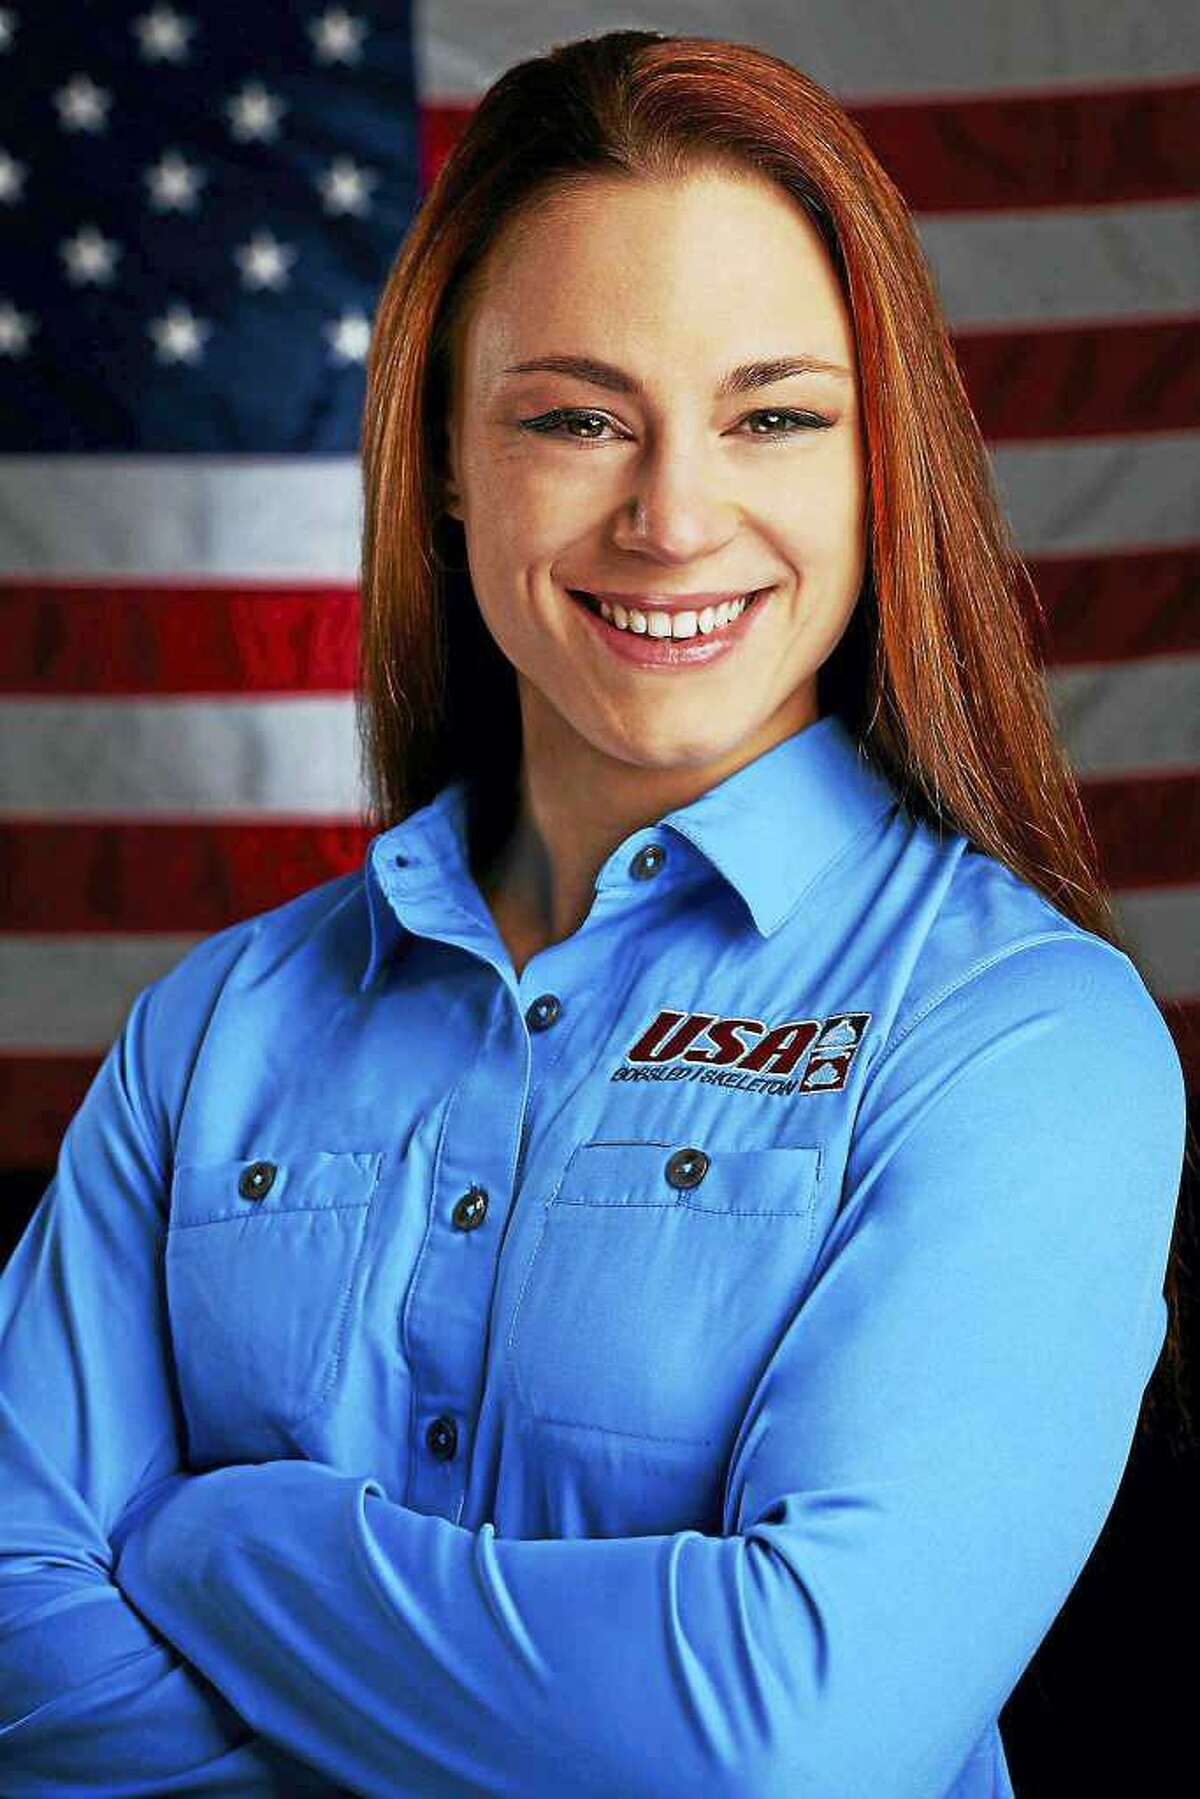 Megan Henry, of Roxbury, is feeling the impact of COVID-19 and her training as an Olympic hopeful in women's skeleton